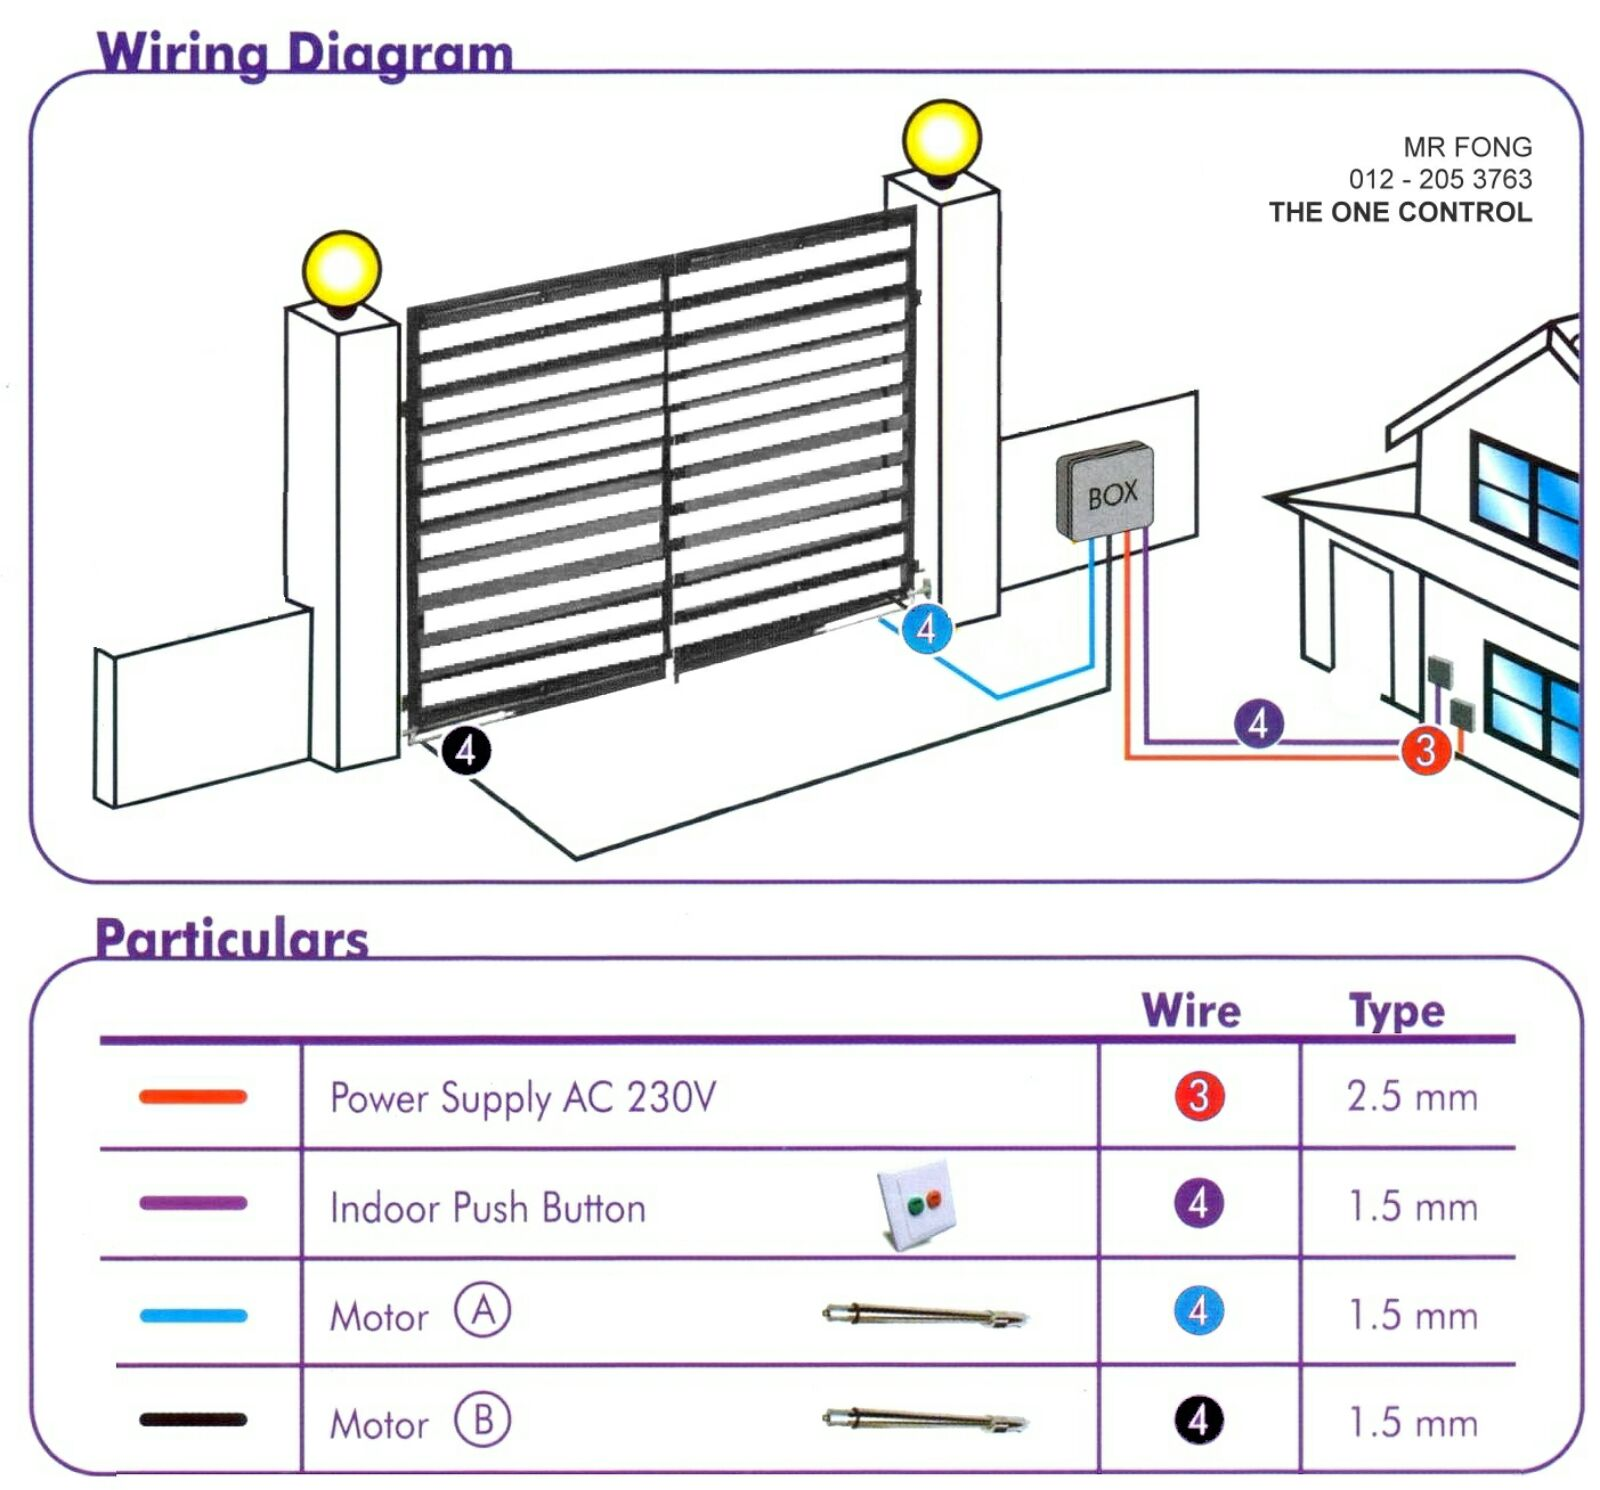 small resolution of wiring diagram energy autogate auto gate system selangor malaysia kuala lumpur kl subang puchong supplier supply supplies installation the one